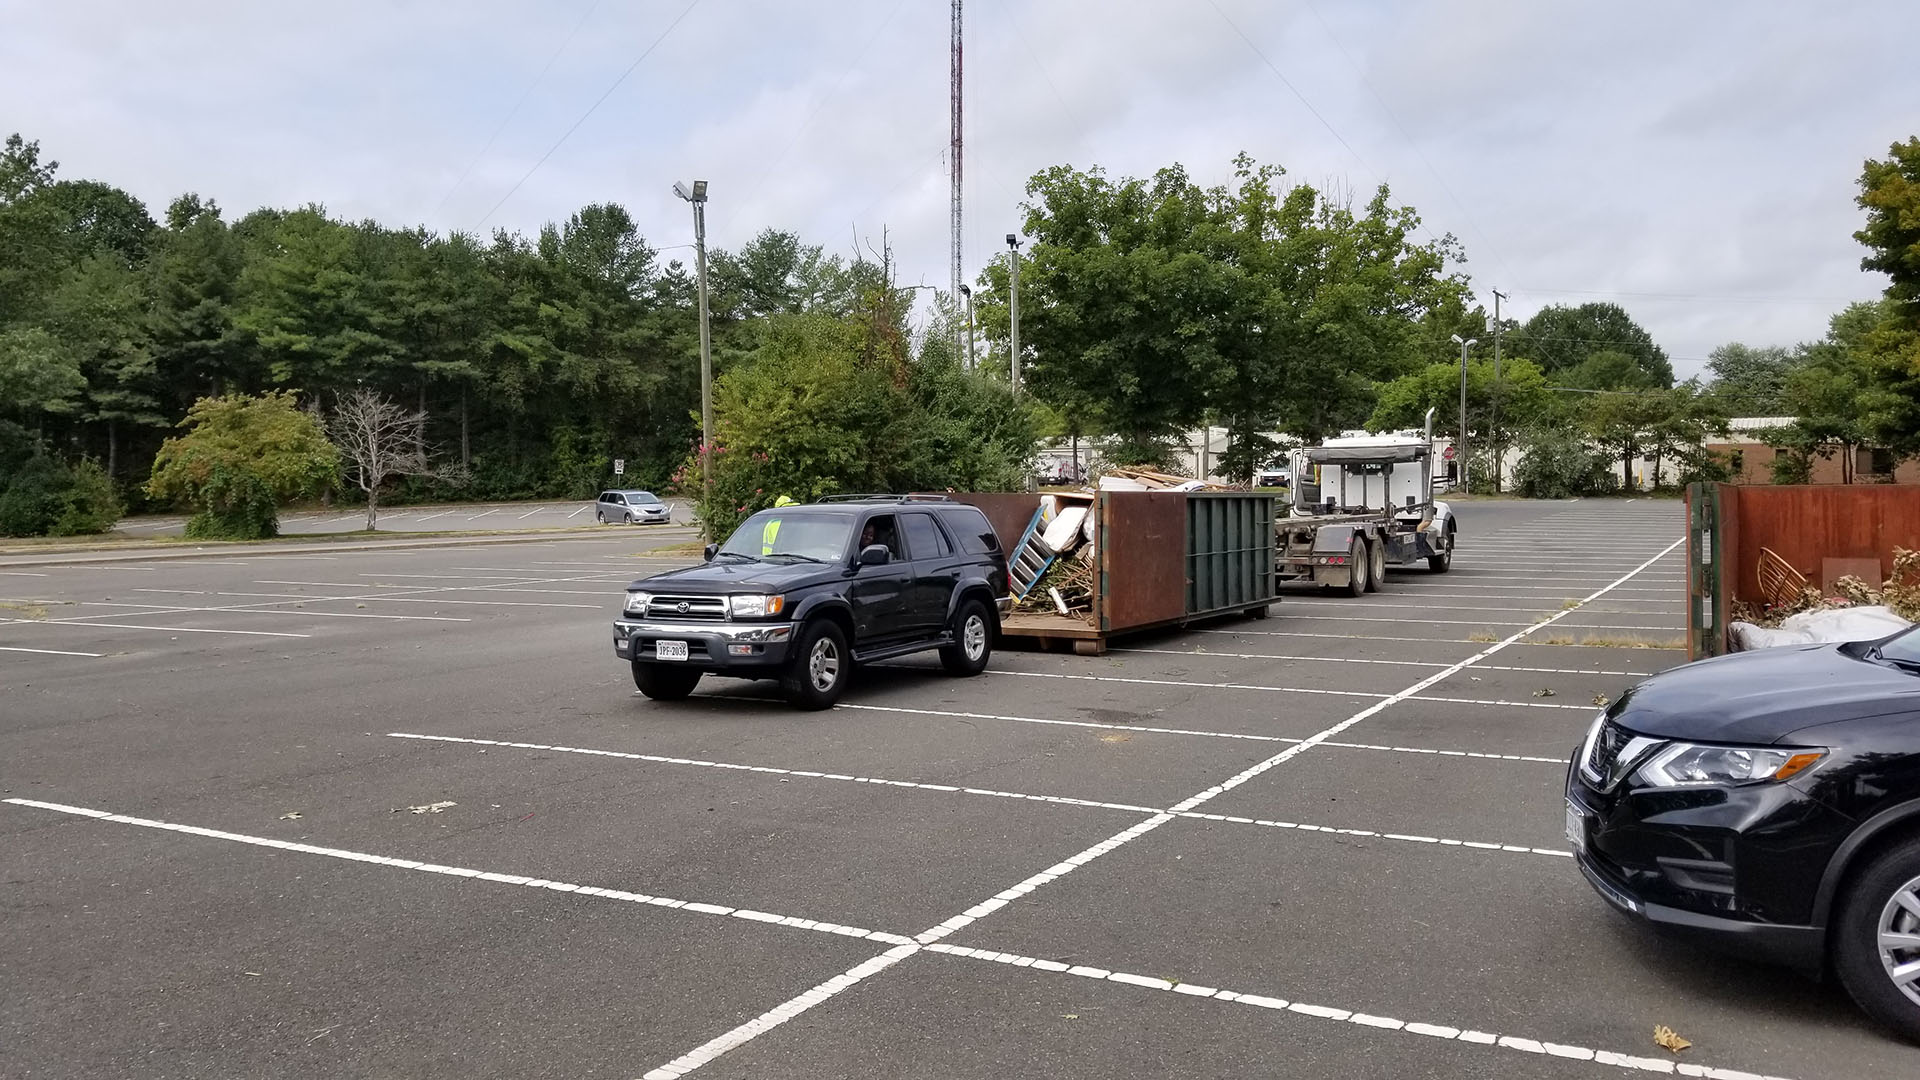 Dumpster Day being held in Dale City